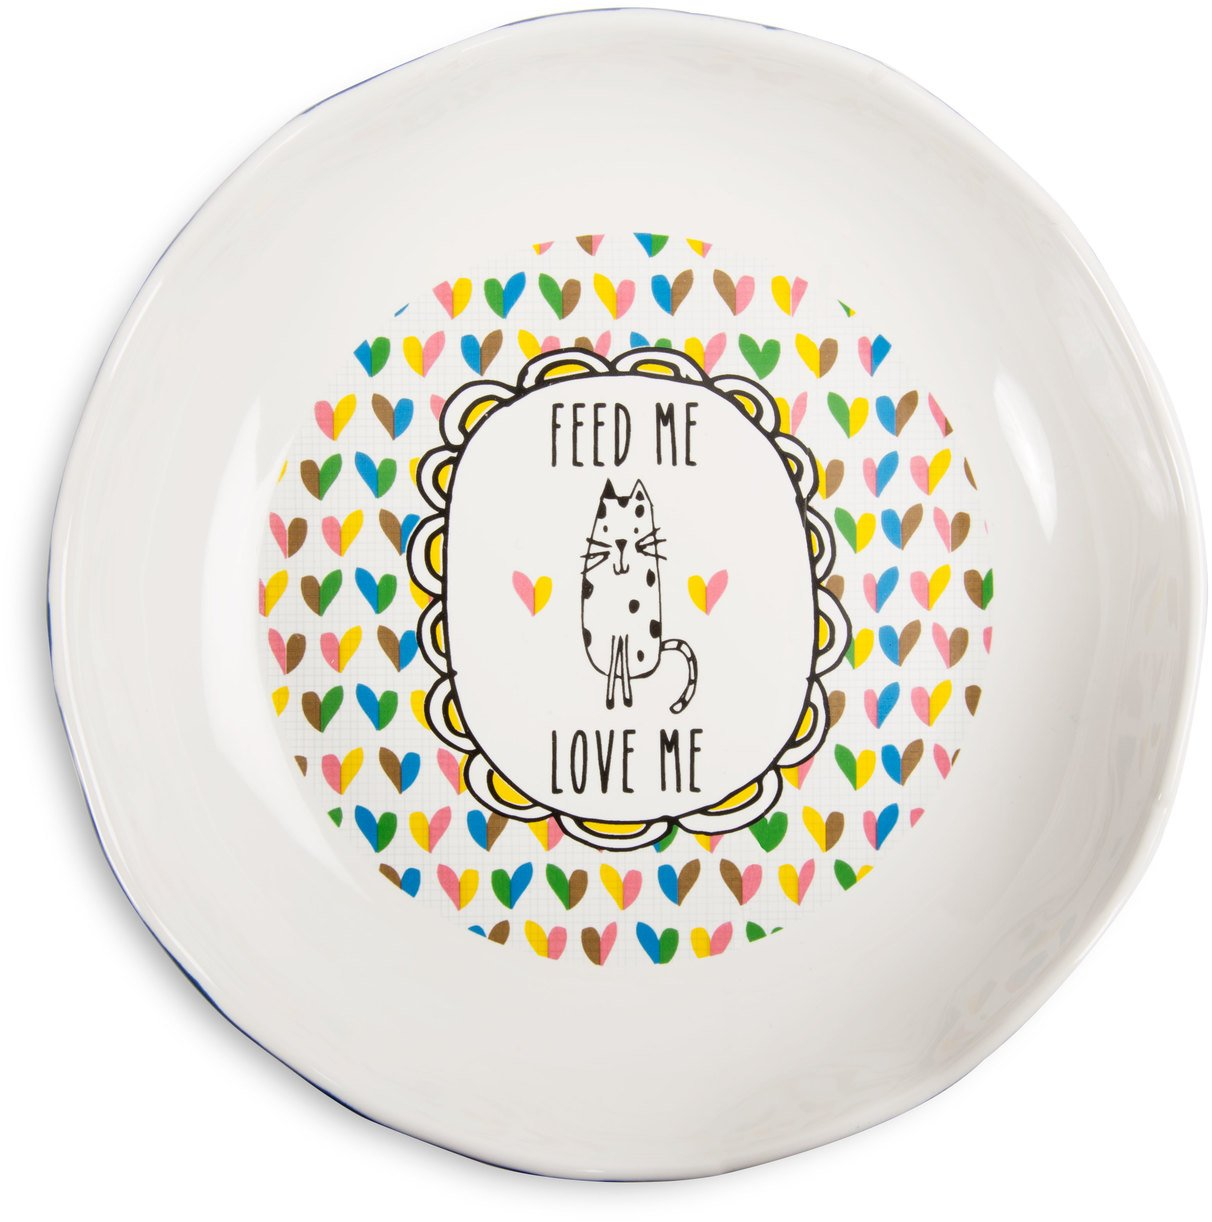 Pavilion Gift Company It's Cats & Dogs-''Feed Me Love Me'' Shallow 2'' Tall Ceramic Cat Food and Water Dish, Navy Blue